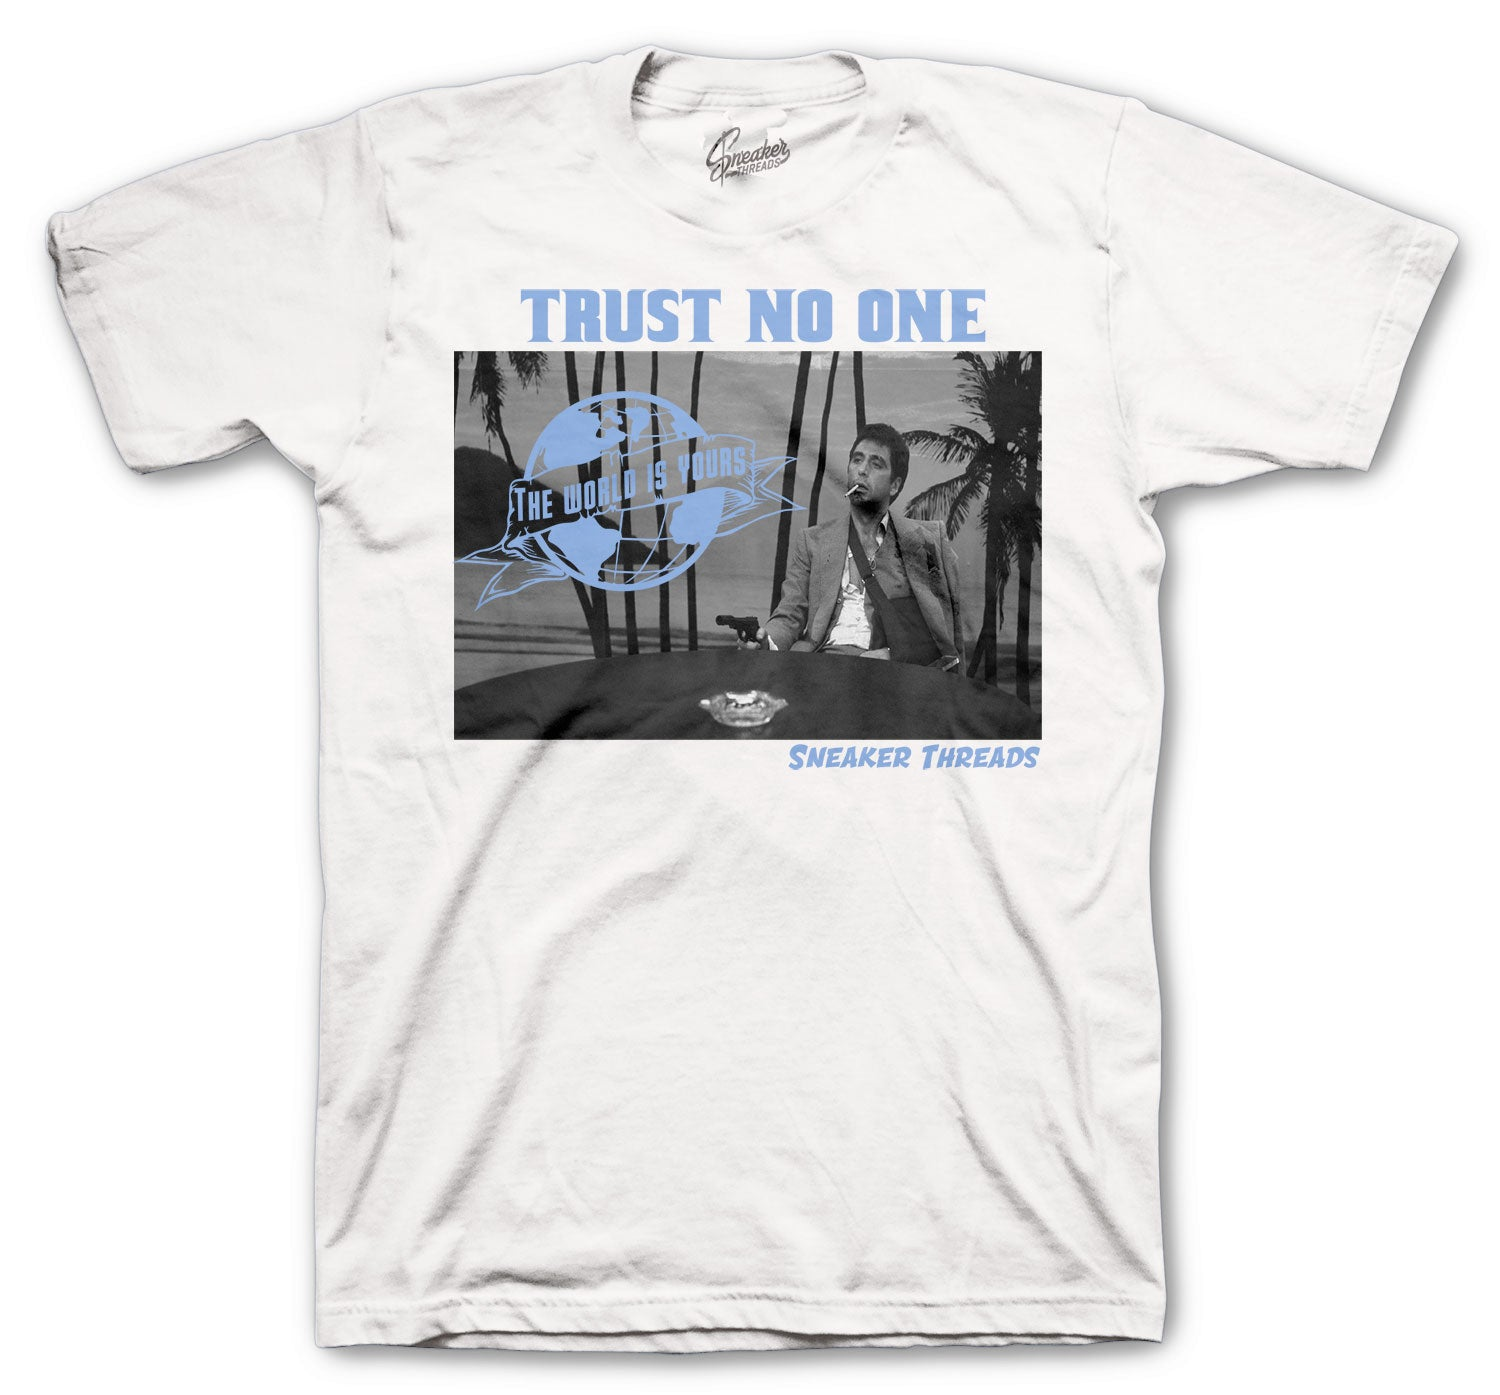 Jordan 3 UNC Shirt - Tony Knows - White